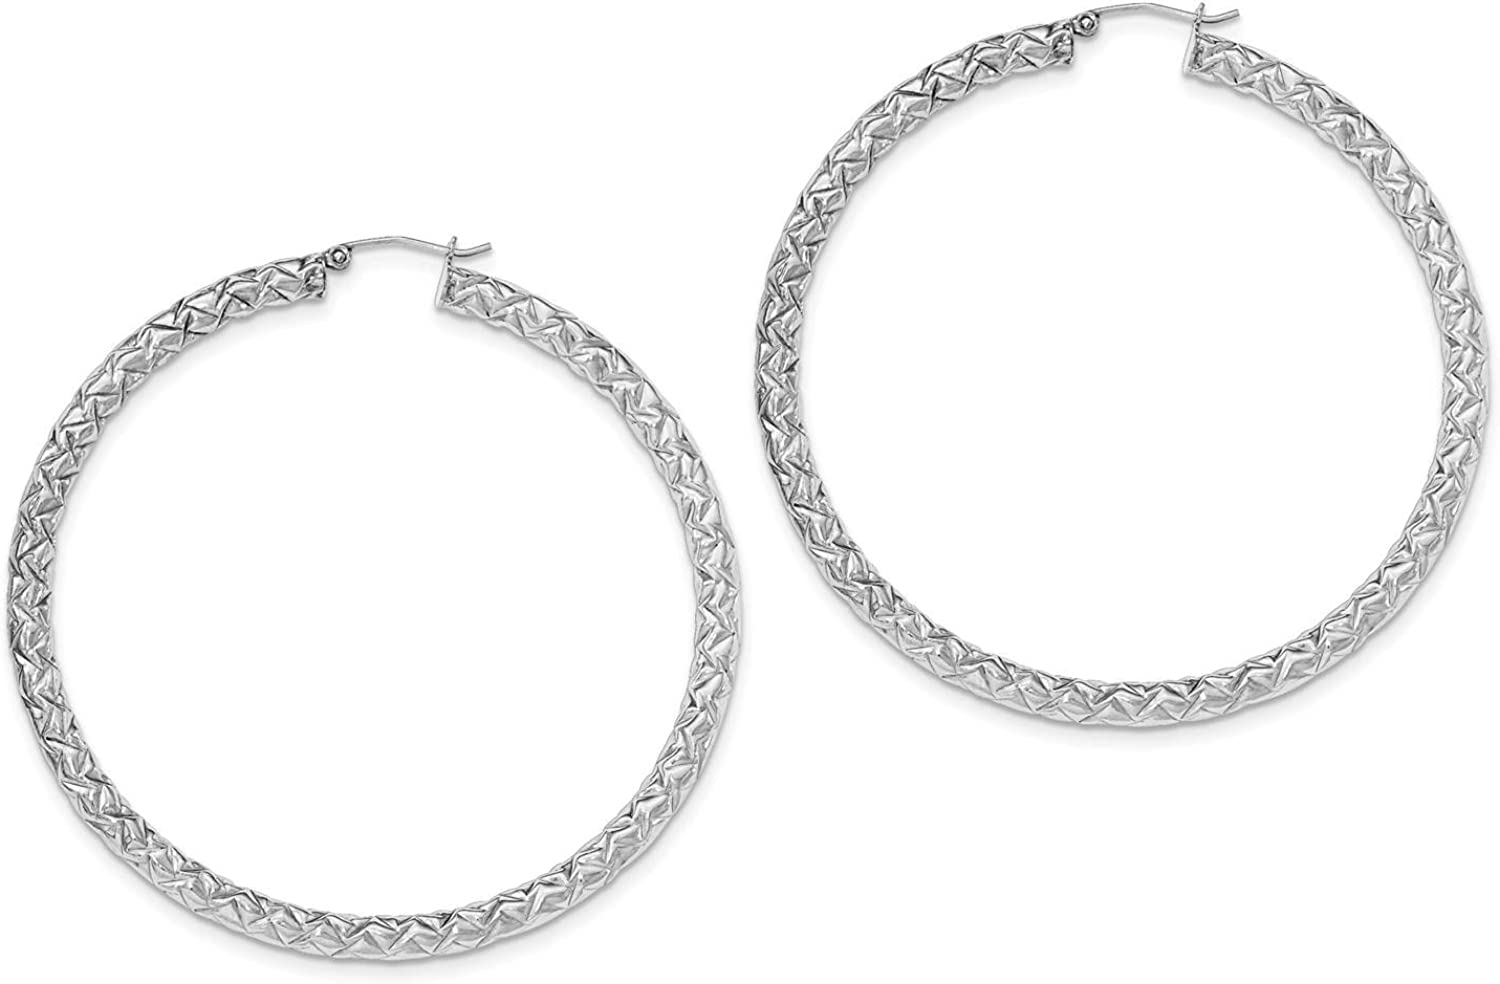 925 Sterling Silver Rhodium-plated Textured Round Hoop Earrings 4mm x 67mm